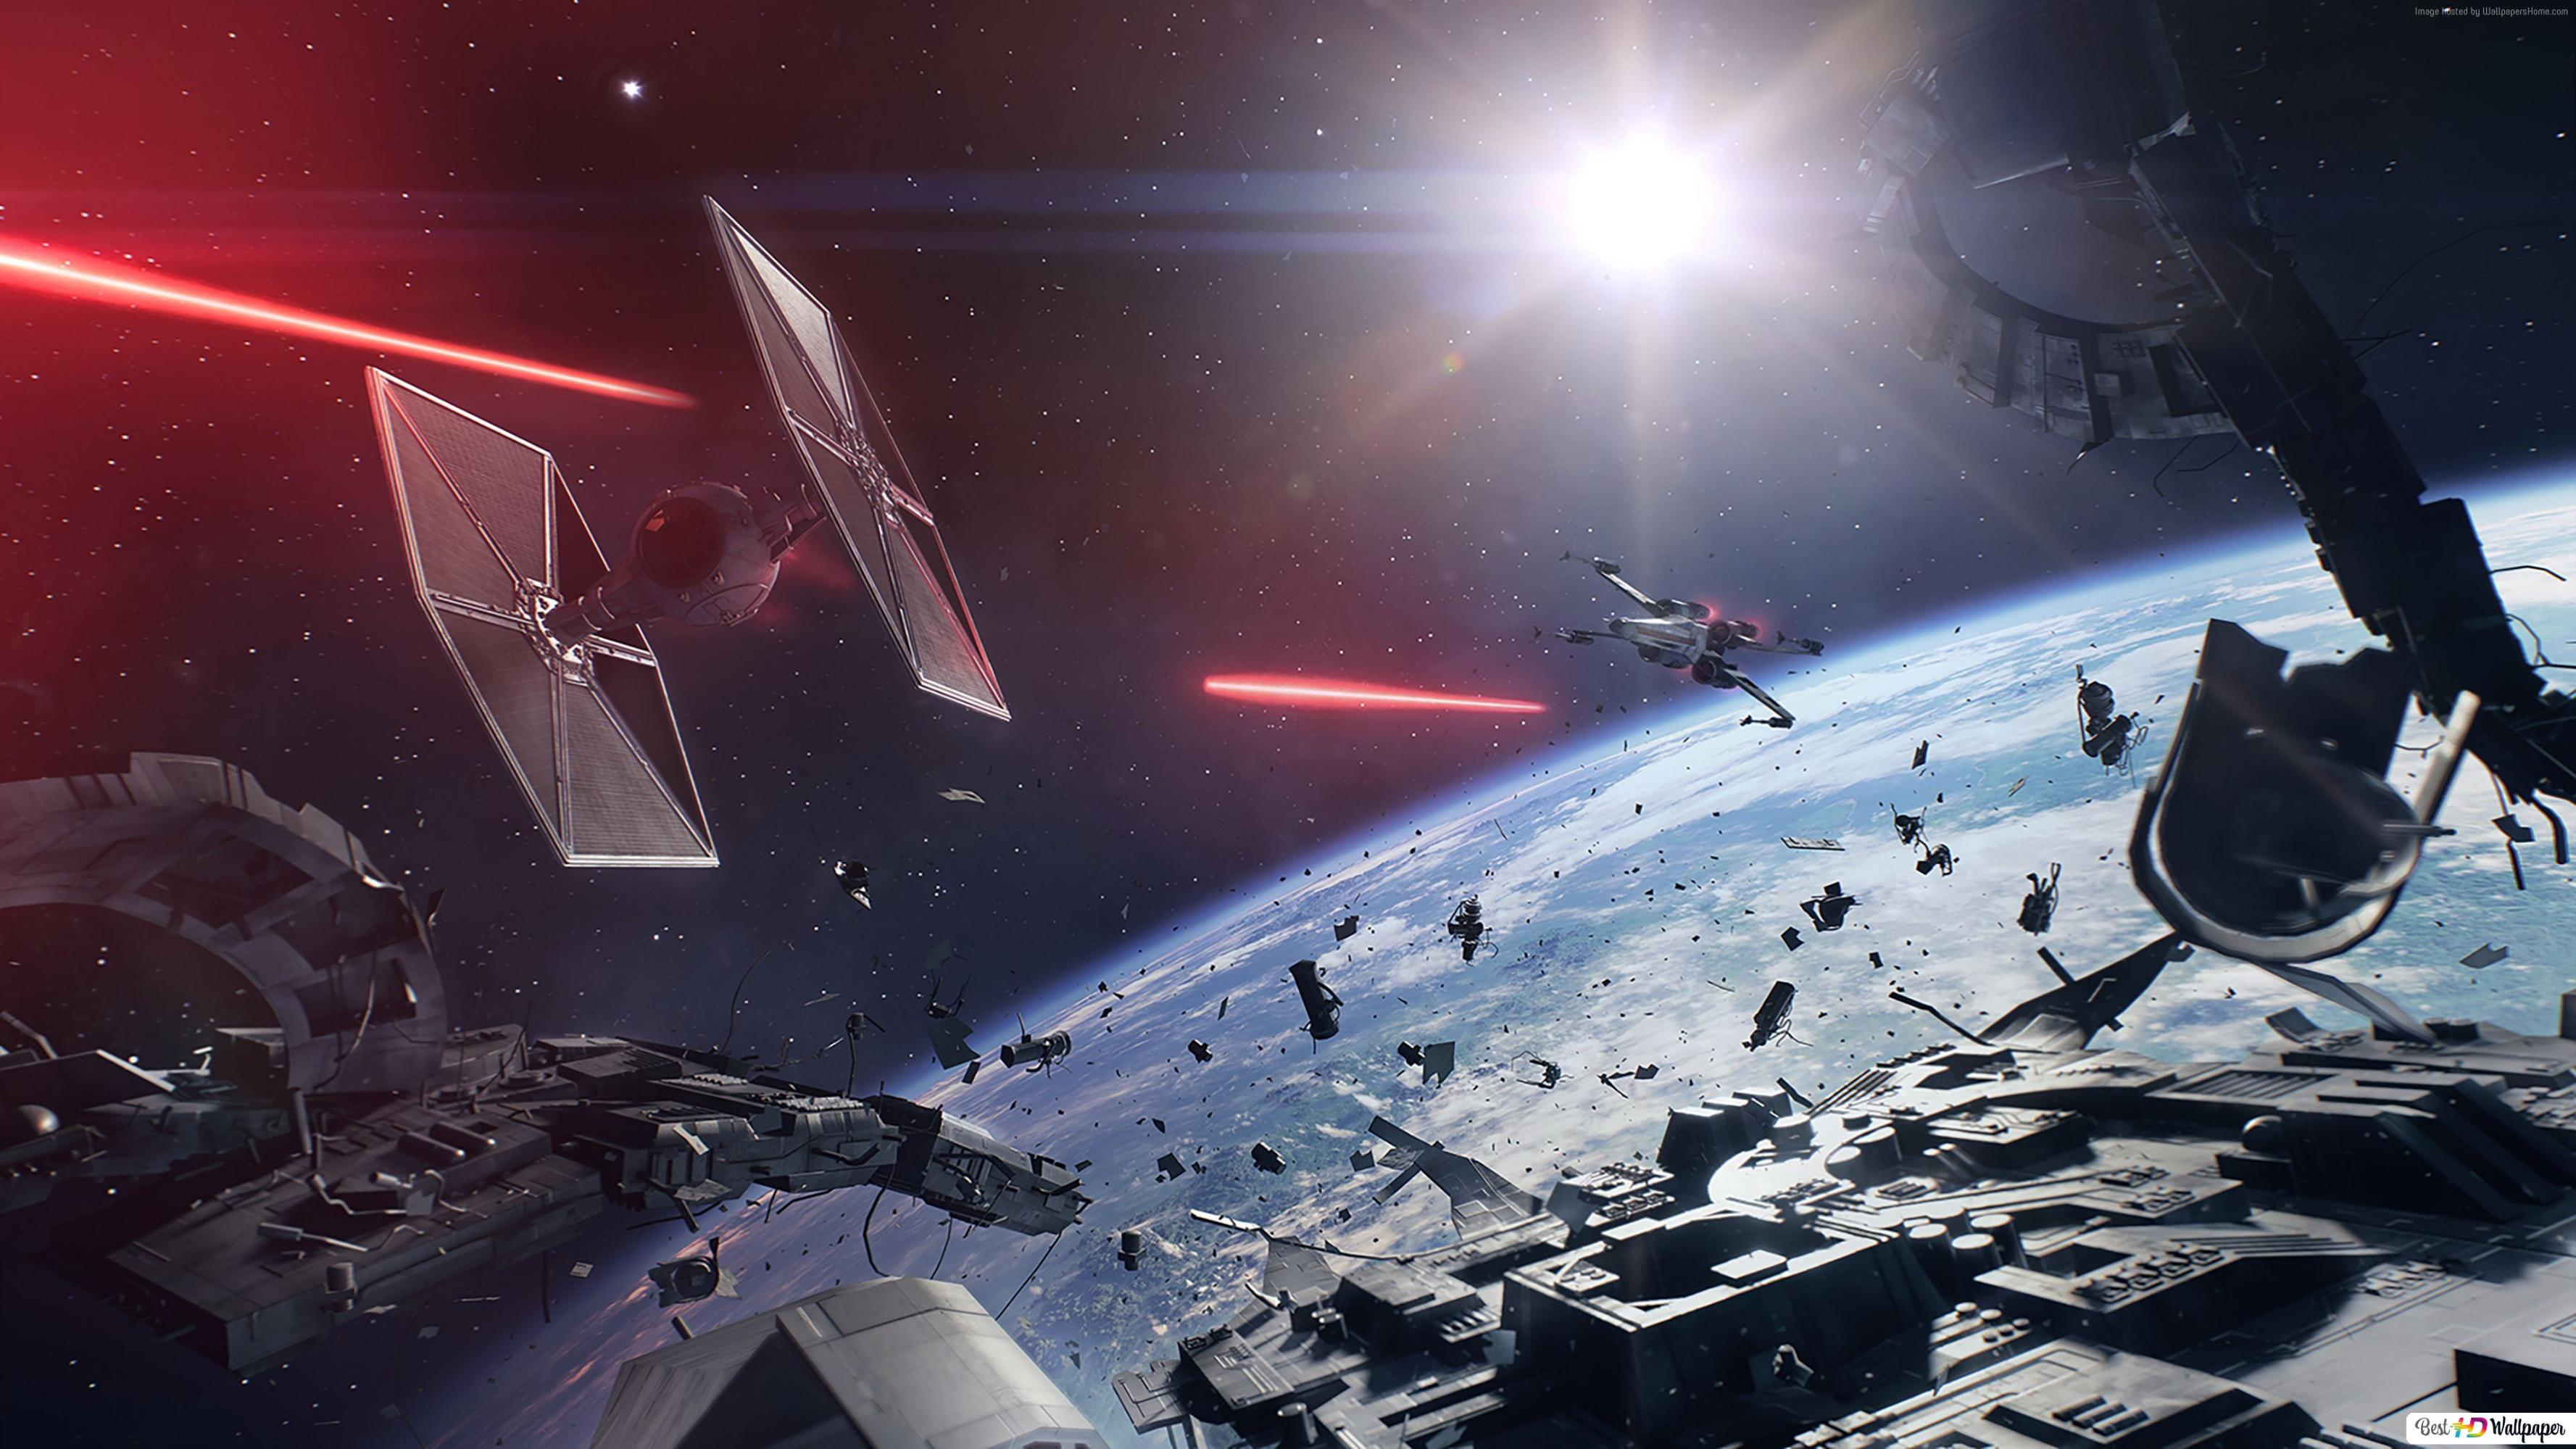 Star Wars Battlefront 2 Game Starship In Space Hd Wallpaper